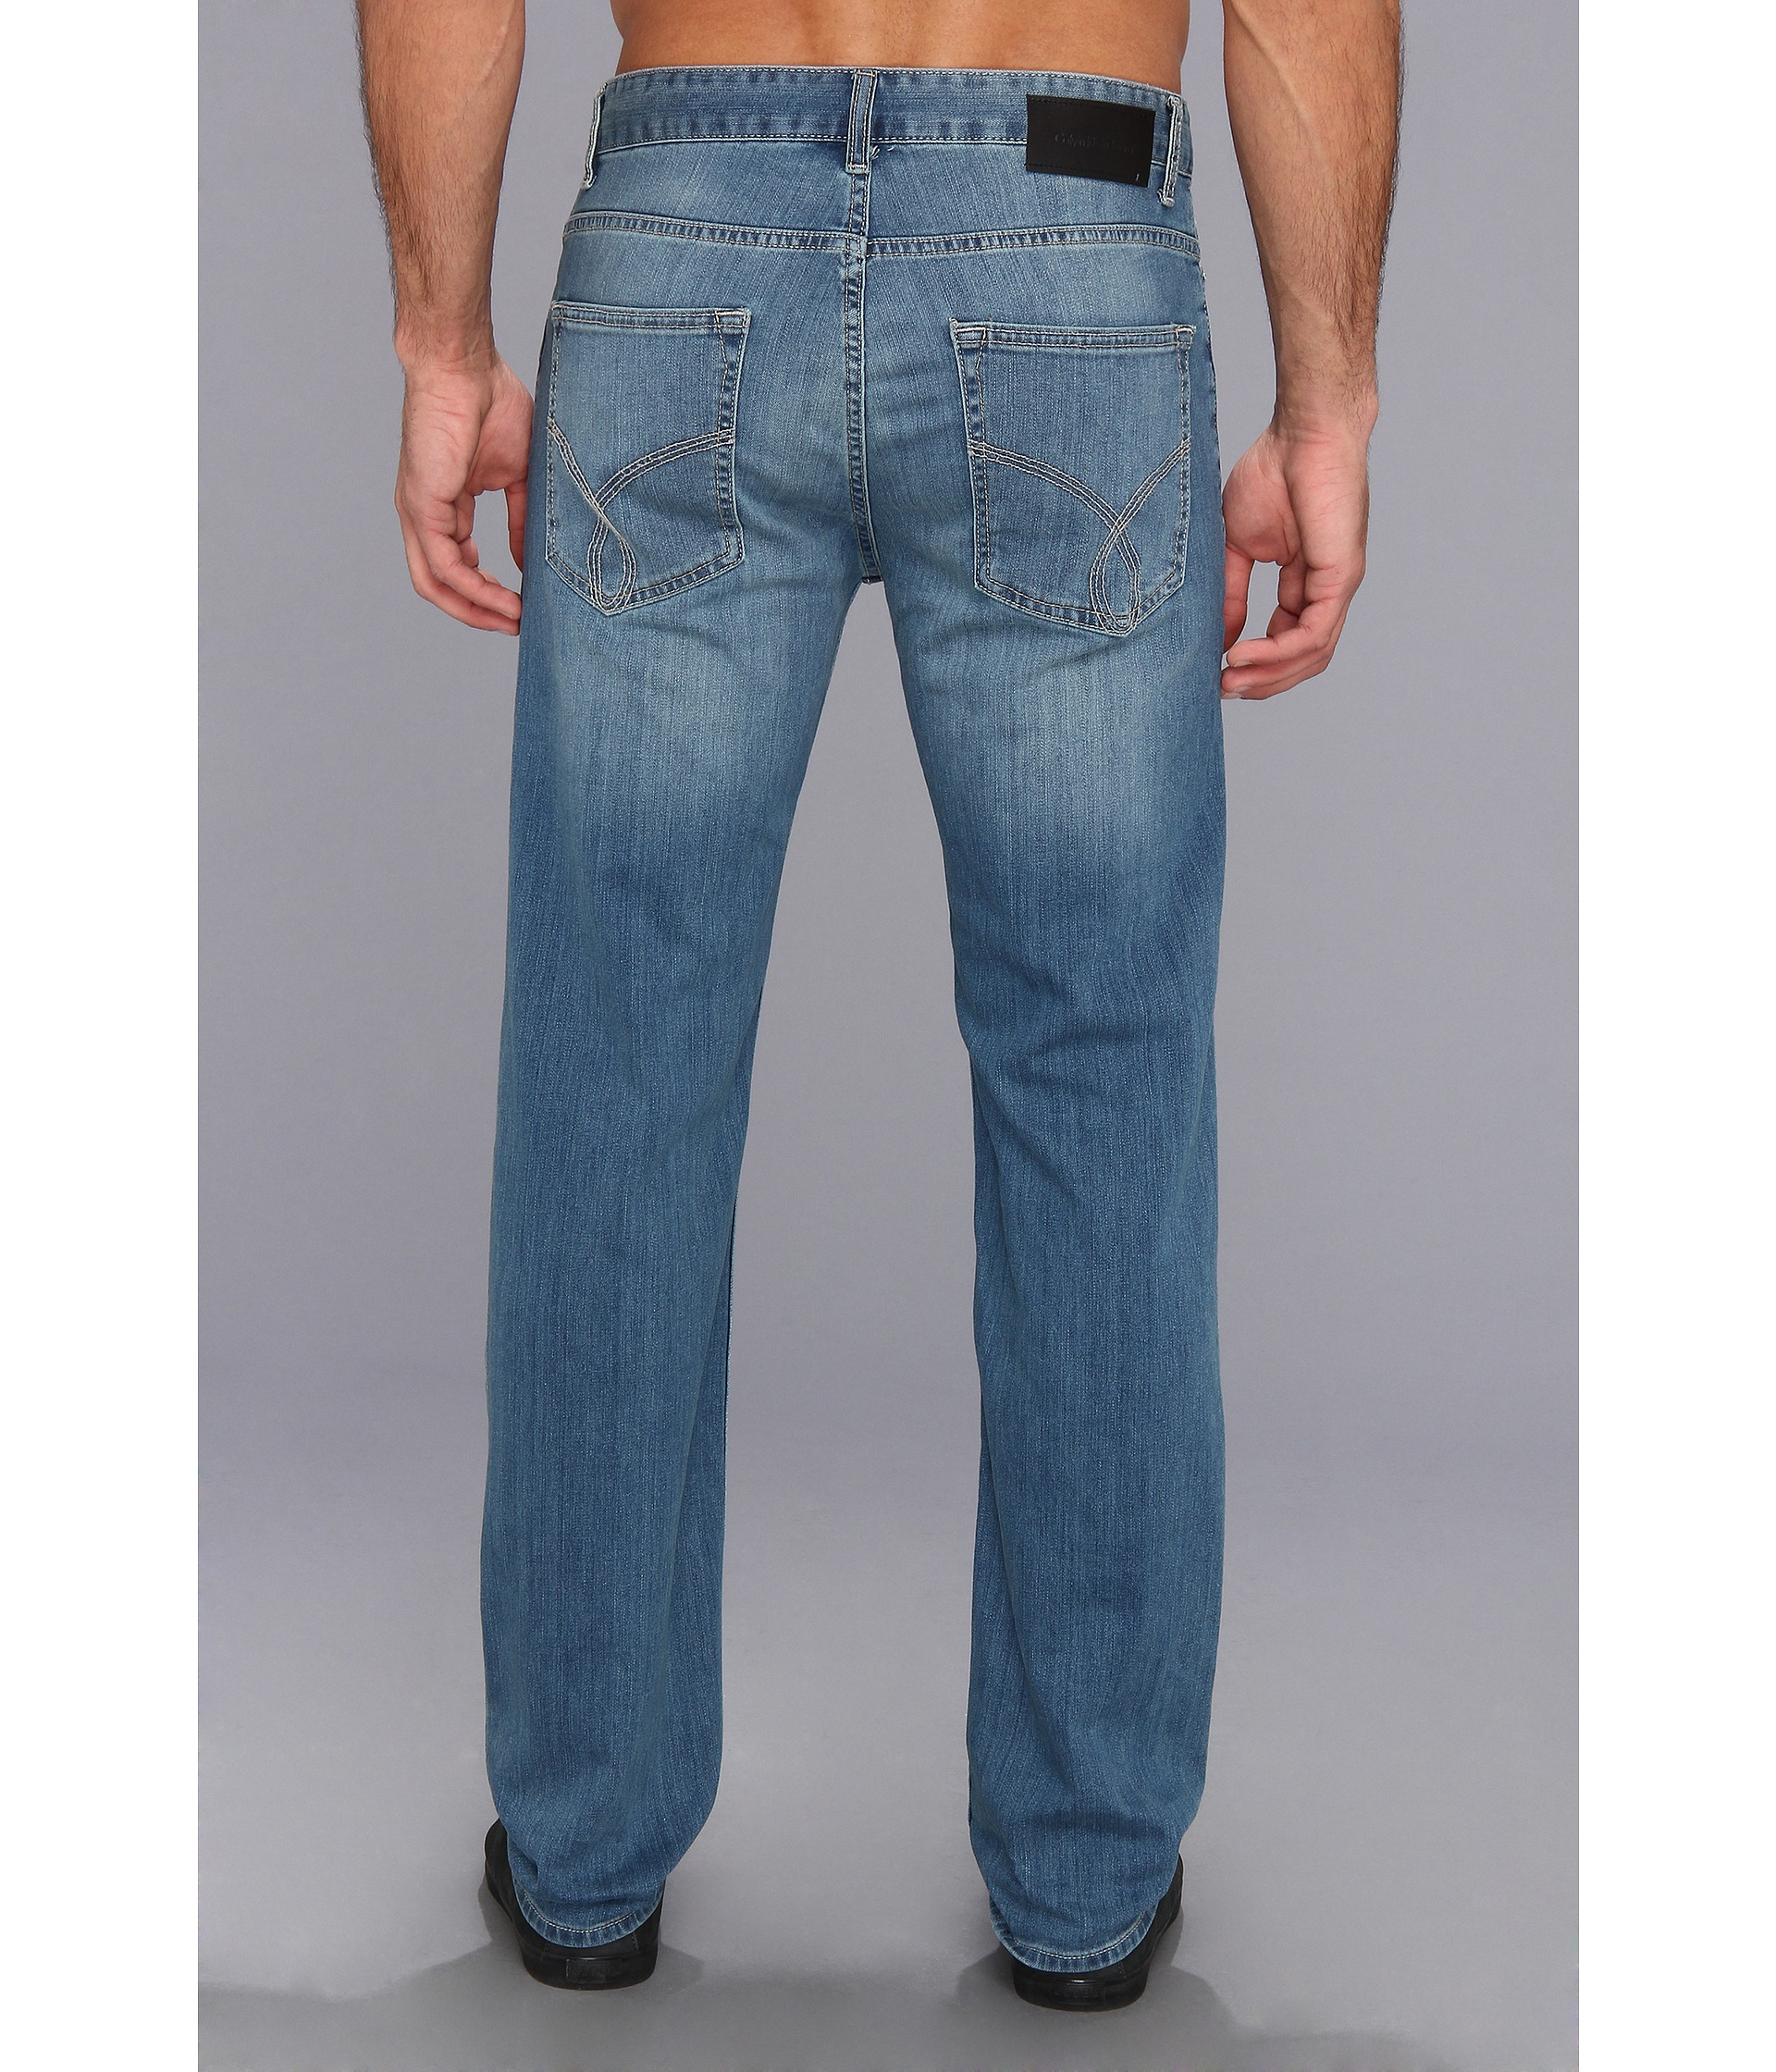 Calvin Klein Jeans Straight Denim in Silver Bullet at Zappos.com